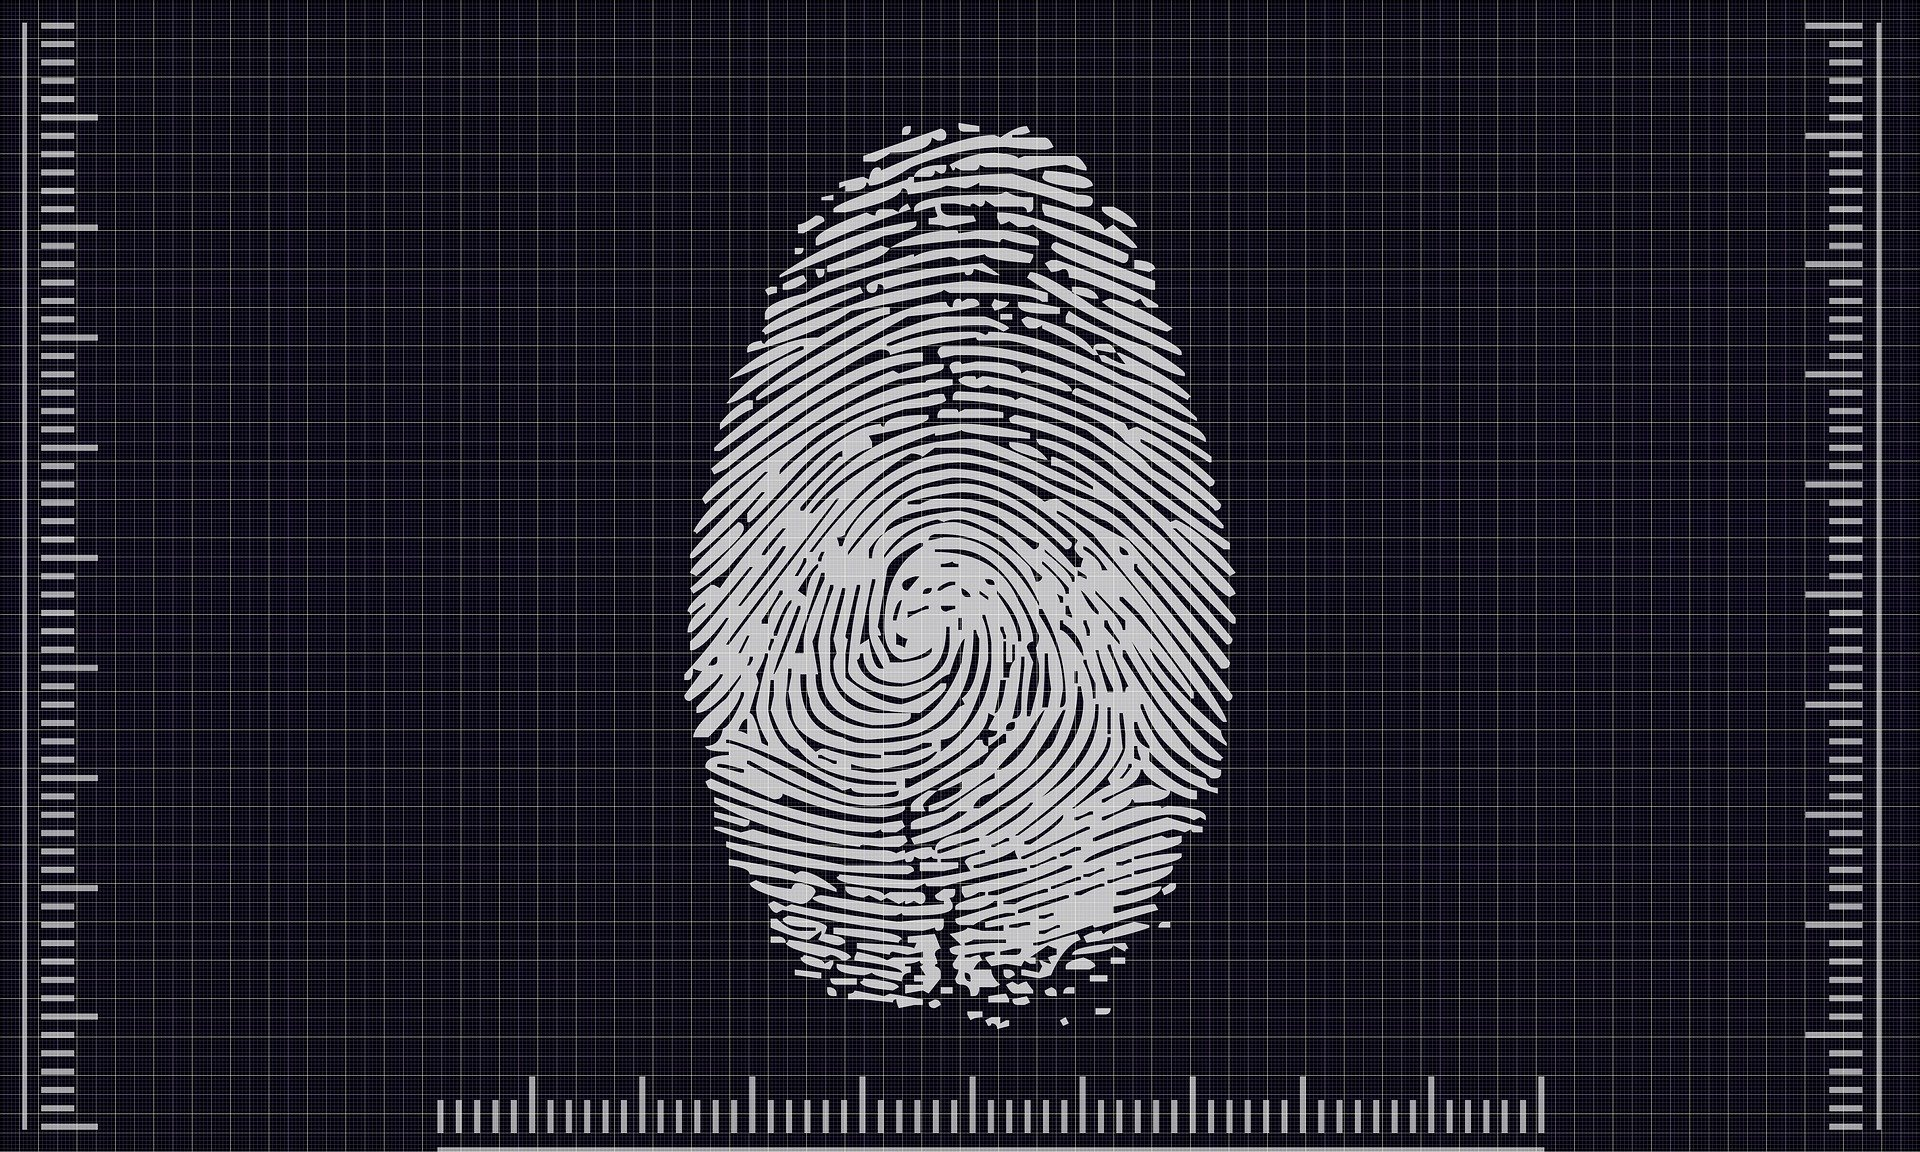 Top 10 Facts About Biometrics In 2020